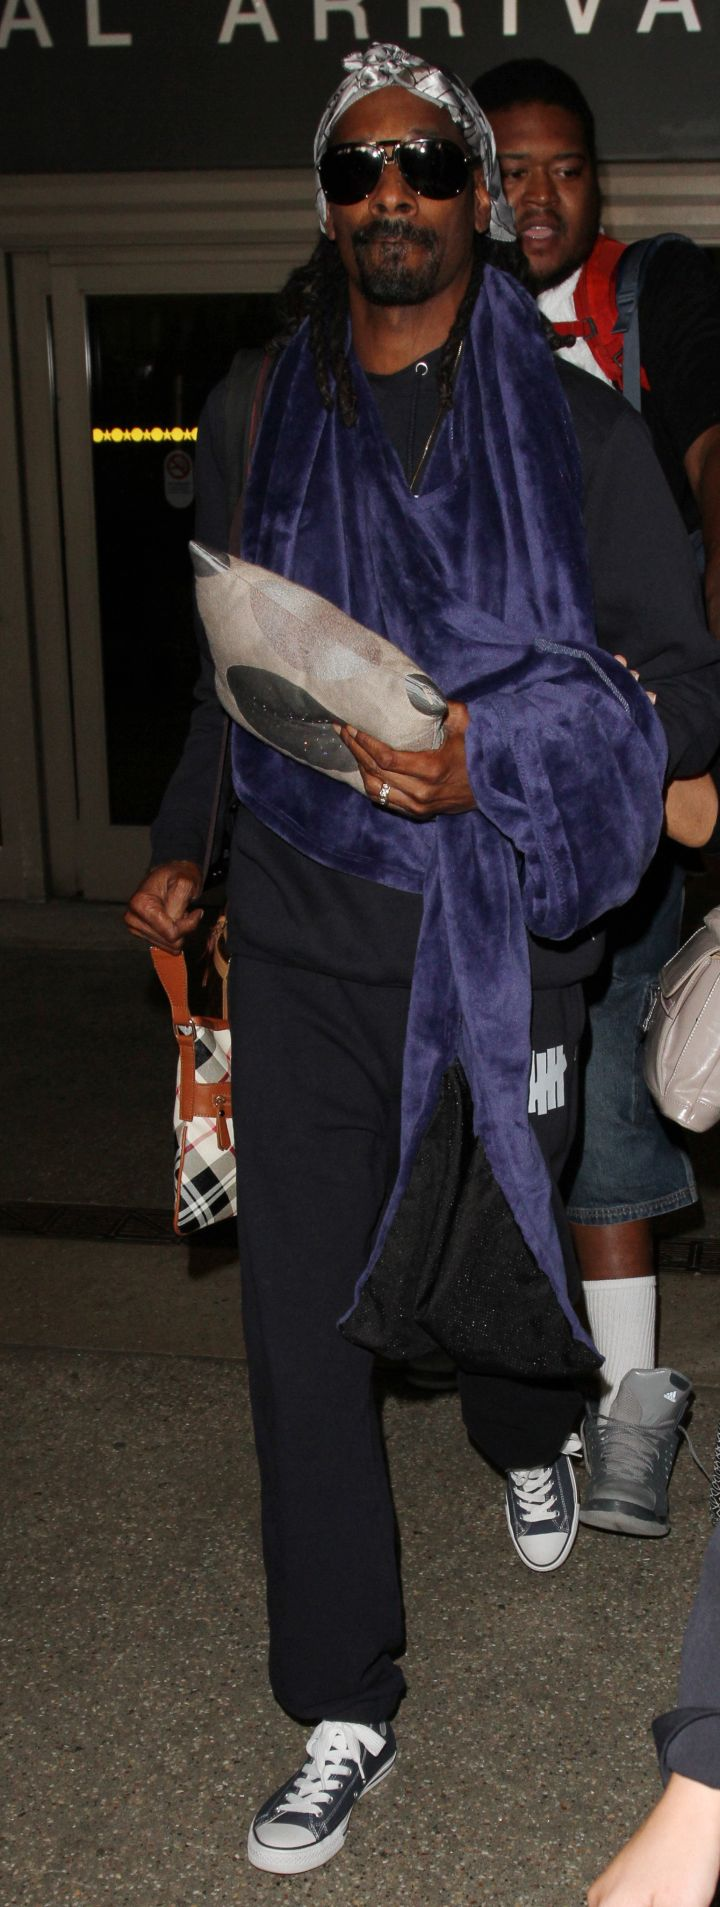 Hair tied, sweatpants, chilling with no makeup on. Snoop Dogg decided to keep it casual for his trip to LAX.